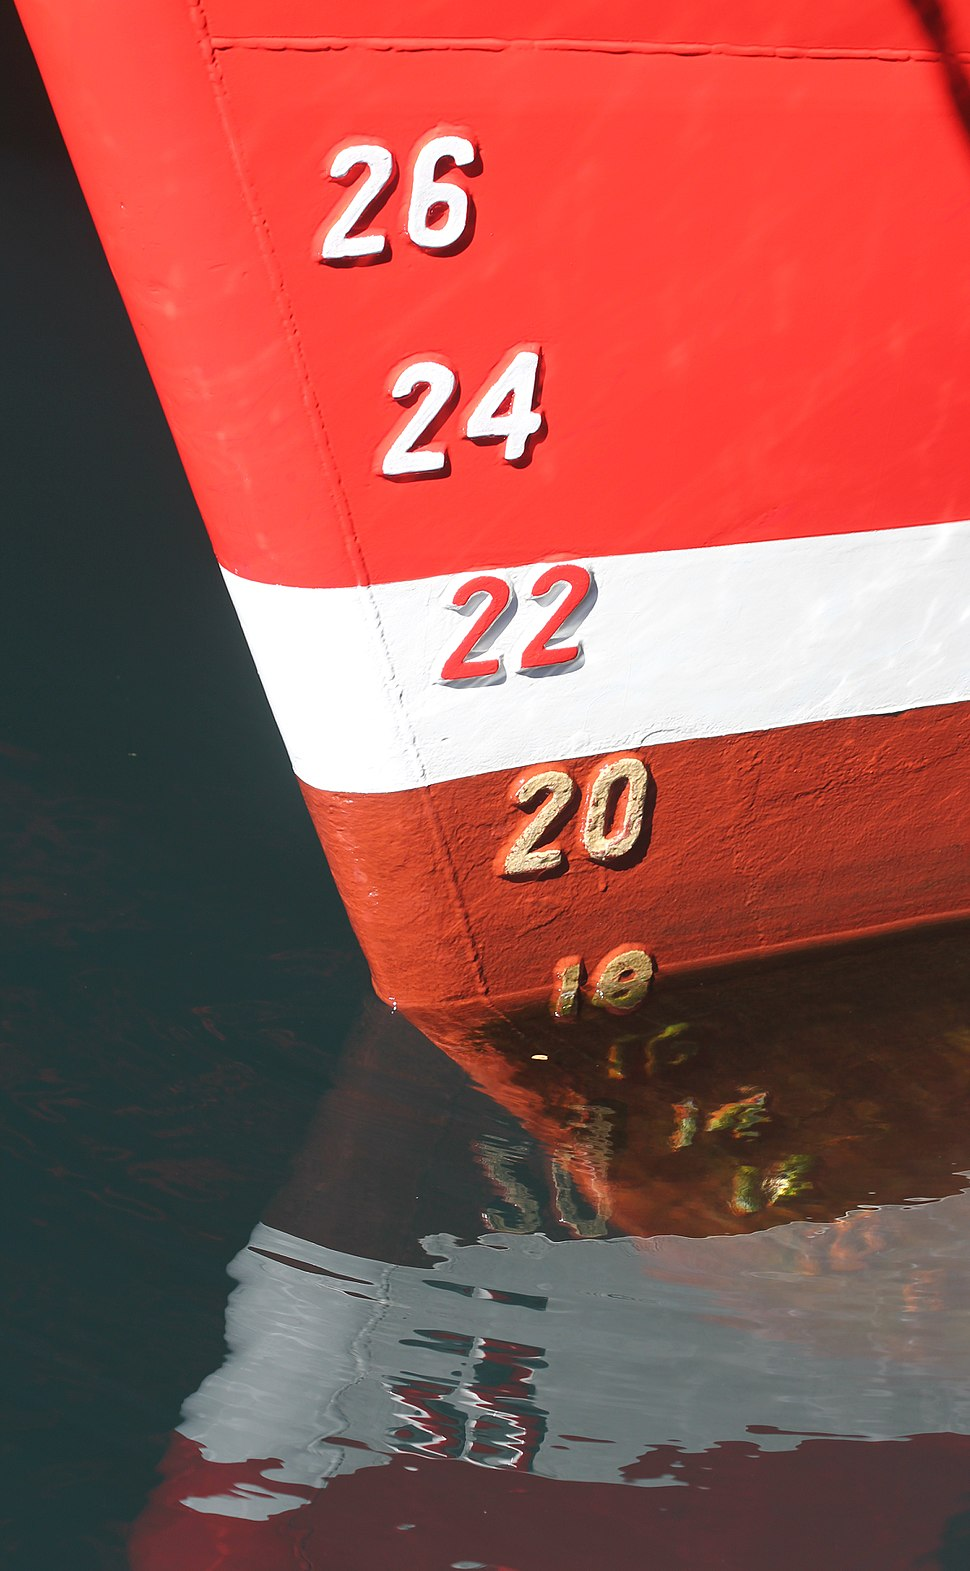 Draft marks on a ship's bow, with reflections